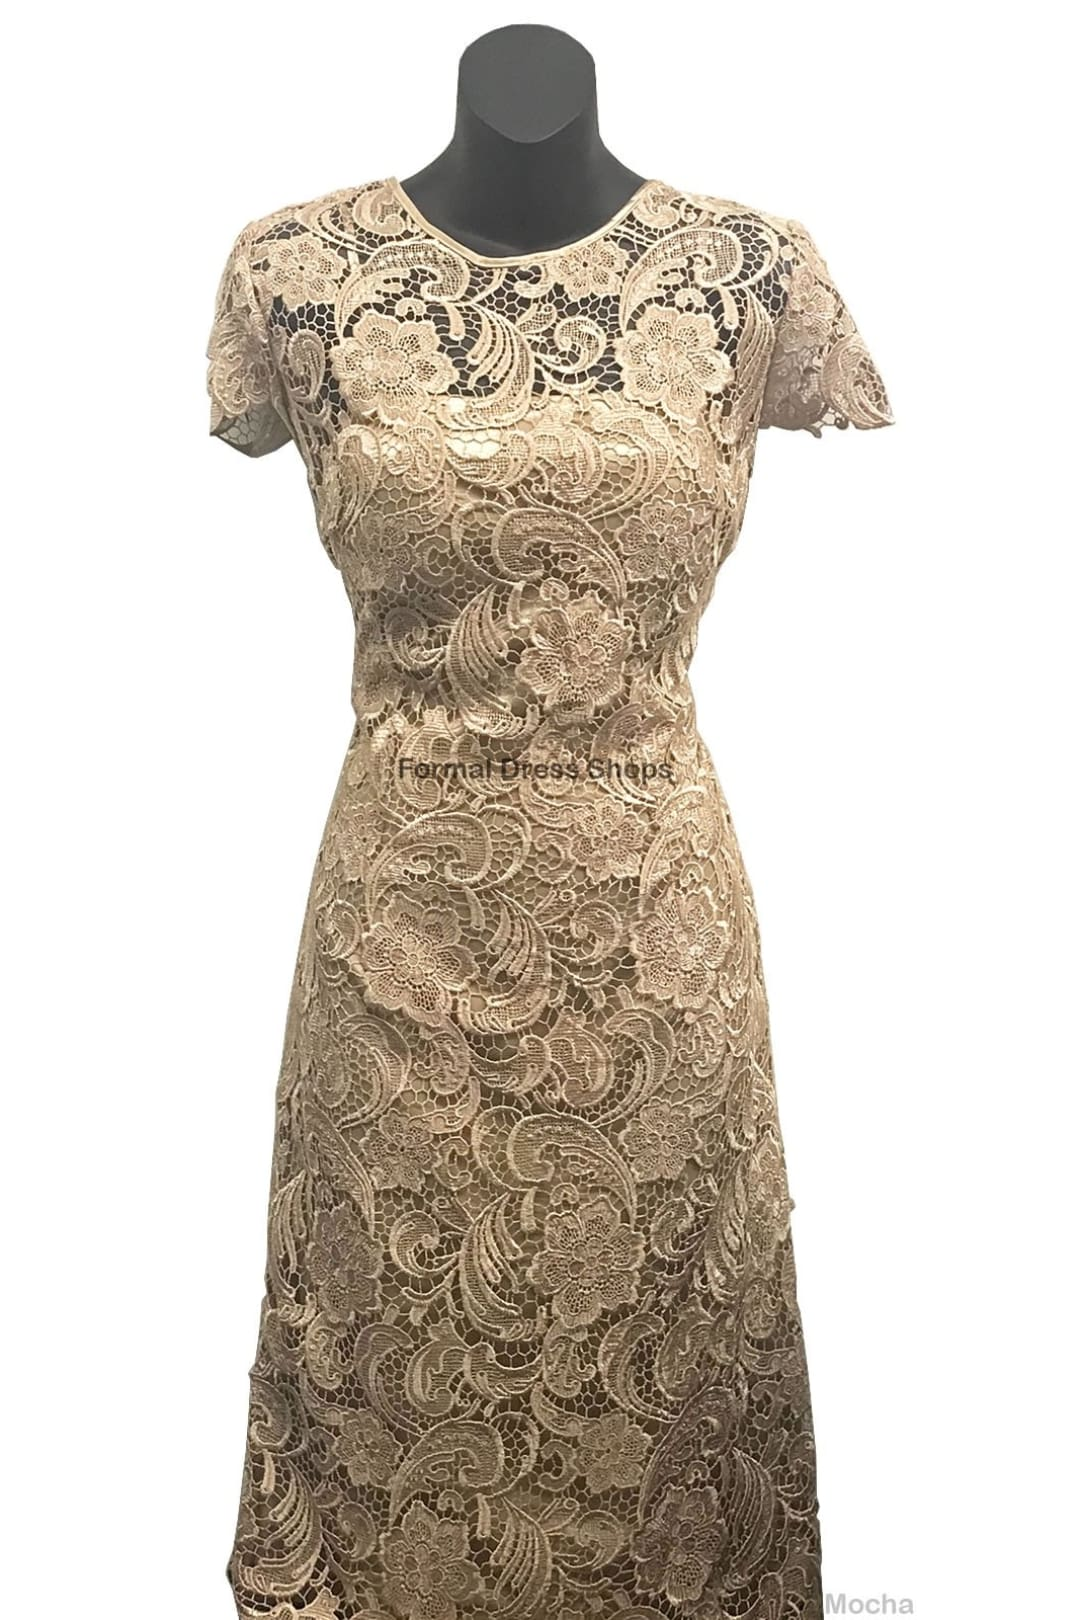 Classy Short Mother of the Groom Dress - Mocha / L